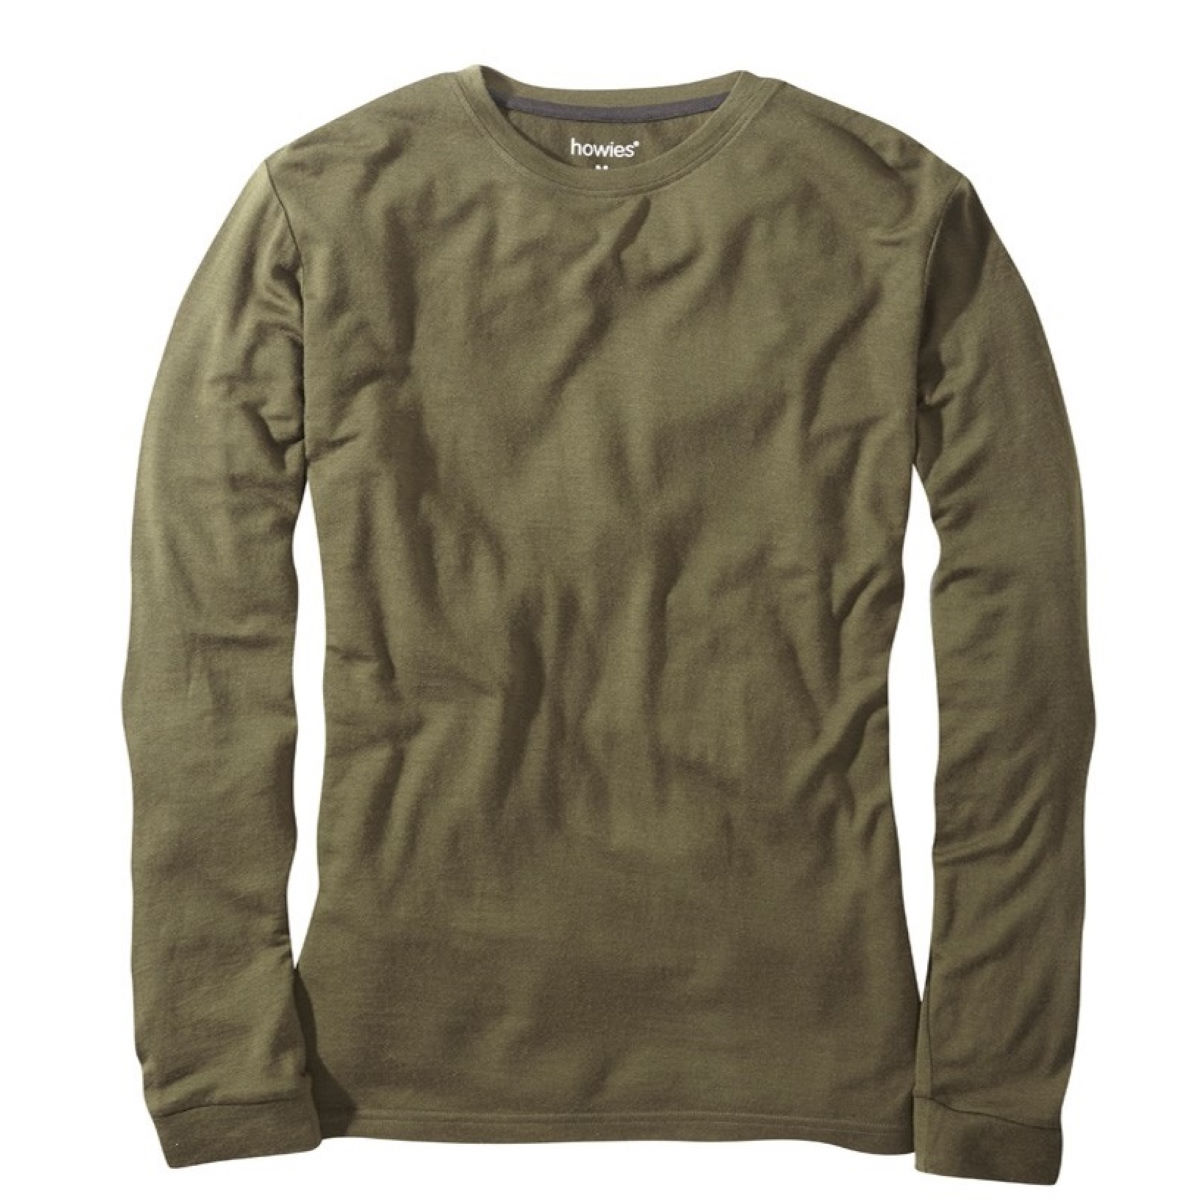 Maillot howies Merino (manches longues) - S Dark Olive T-shirts